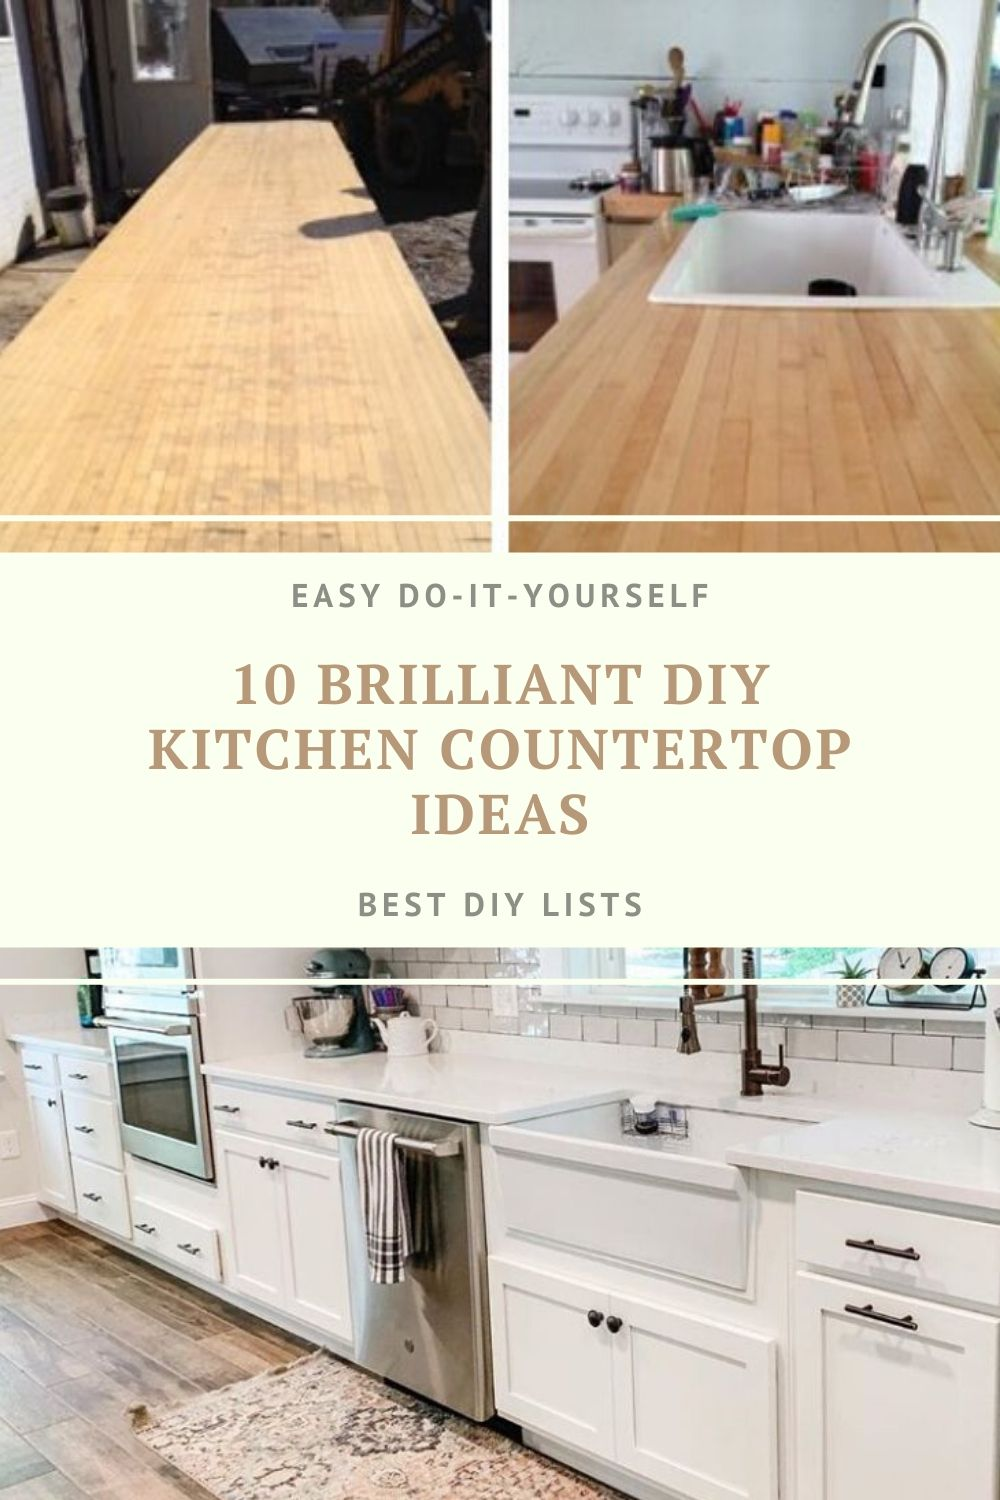 Diy Kitchen Countertop Ideas In 2020 Diy Kitchen Kitchen